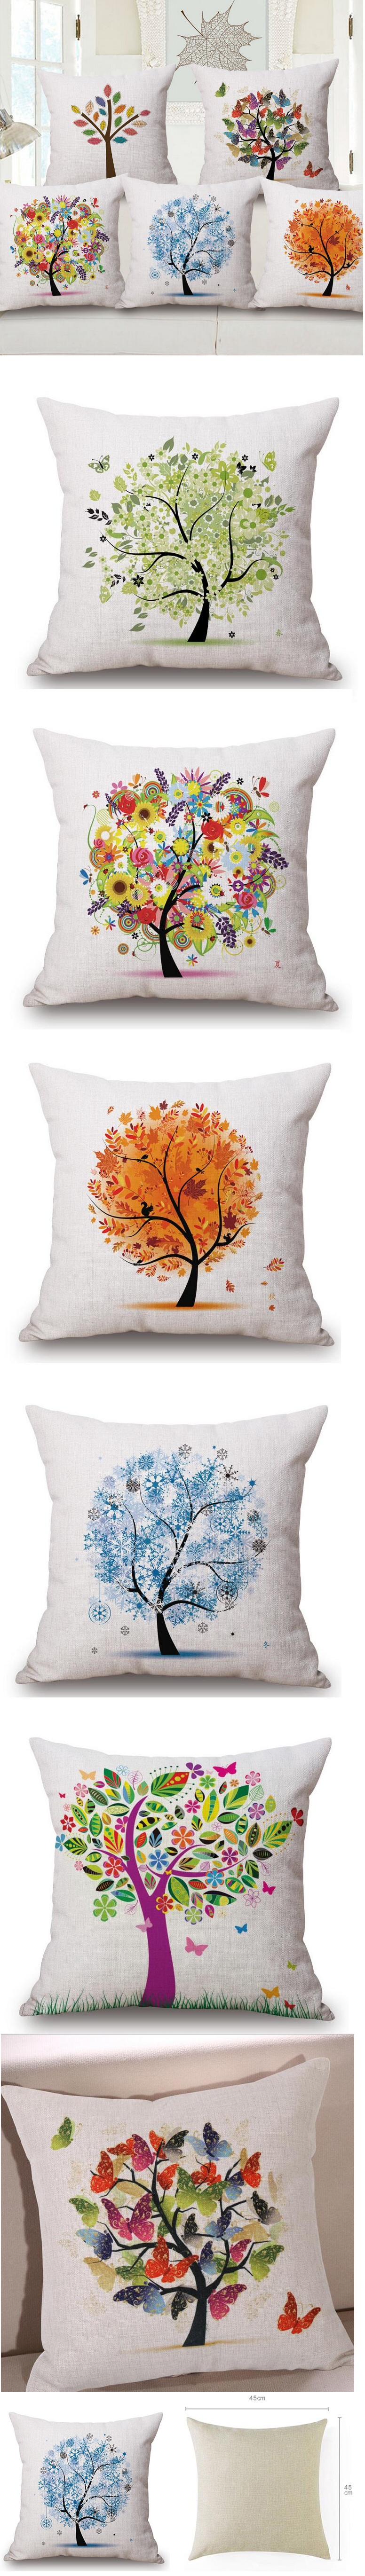 pillowcases pillow with covers names cases manila canada customized pictures shams pillows customize